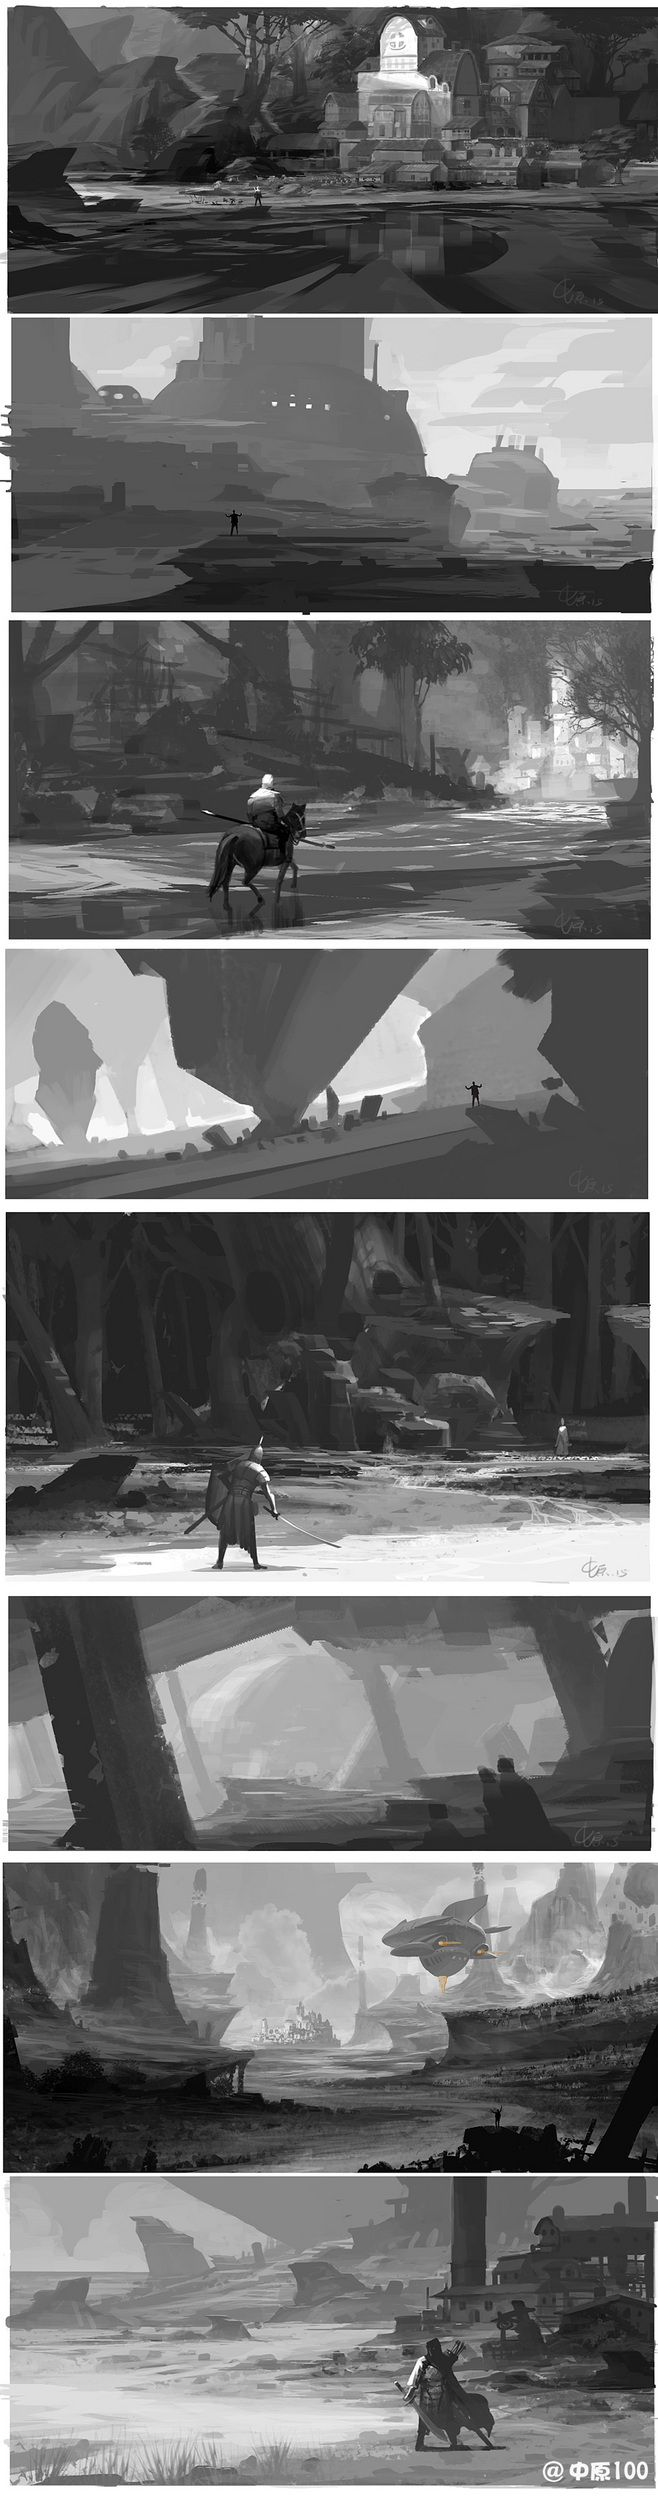 environment design and concept sketches